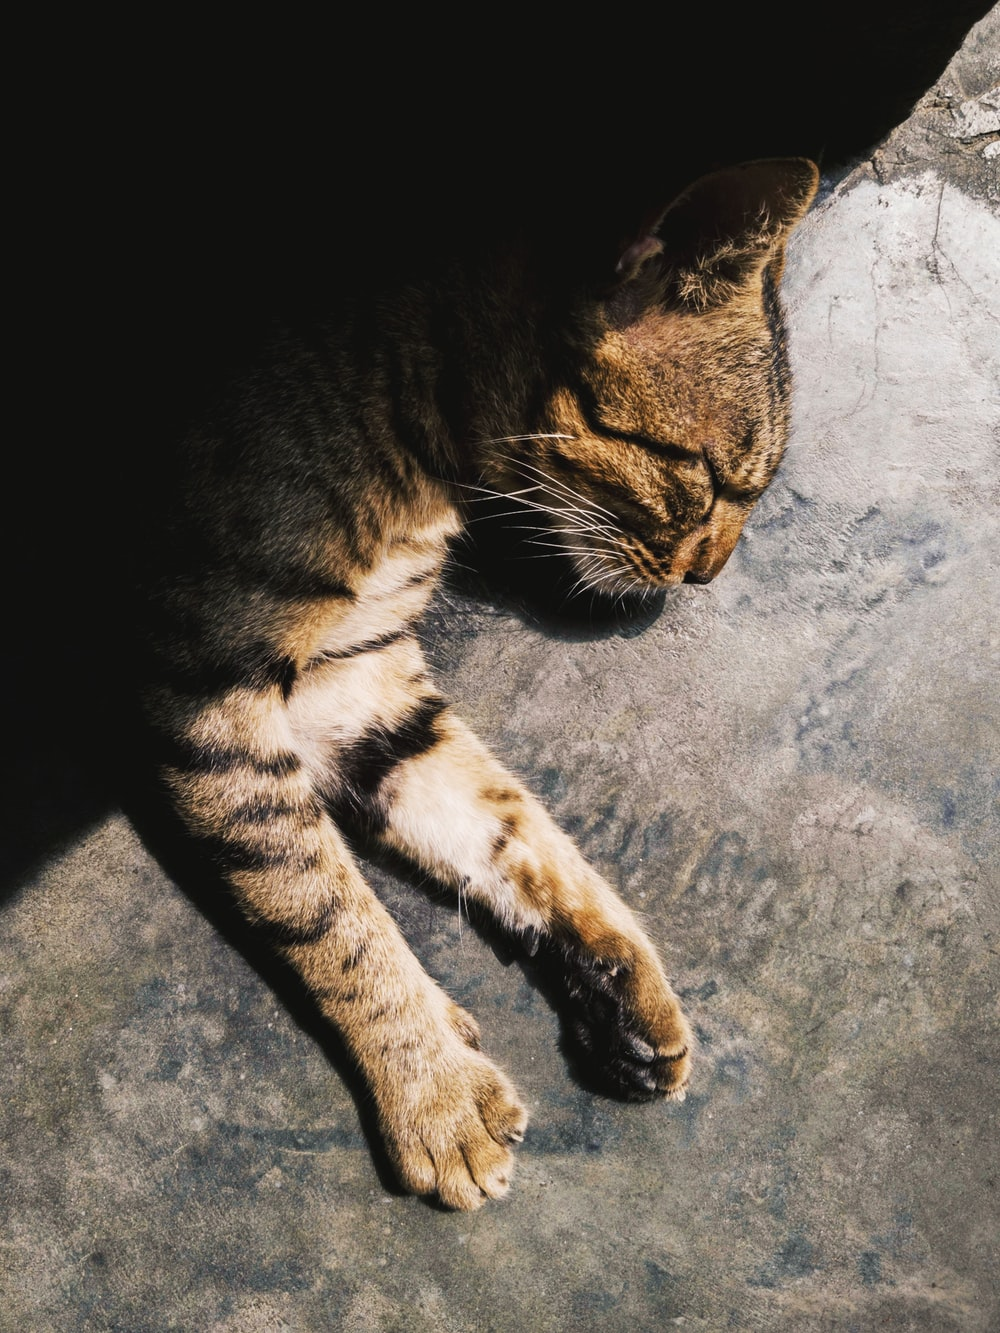 silver tabby cat lying on concrete surface